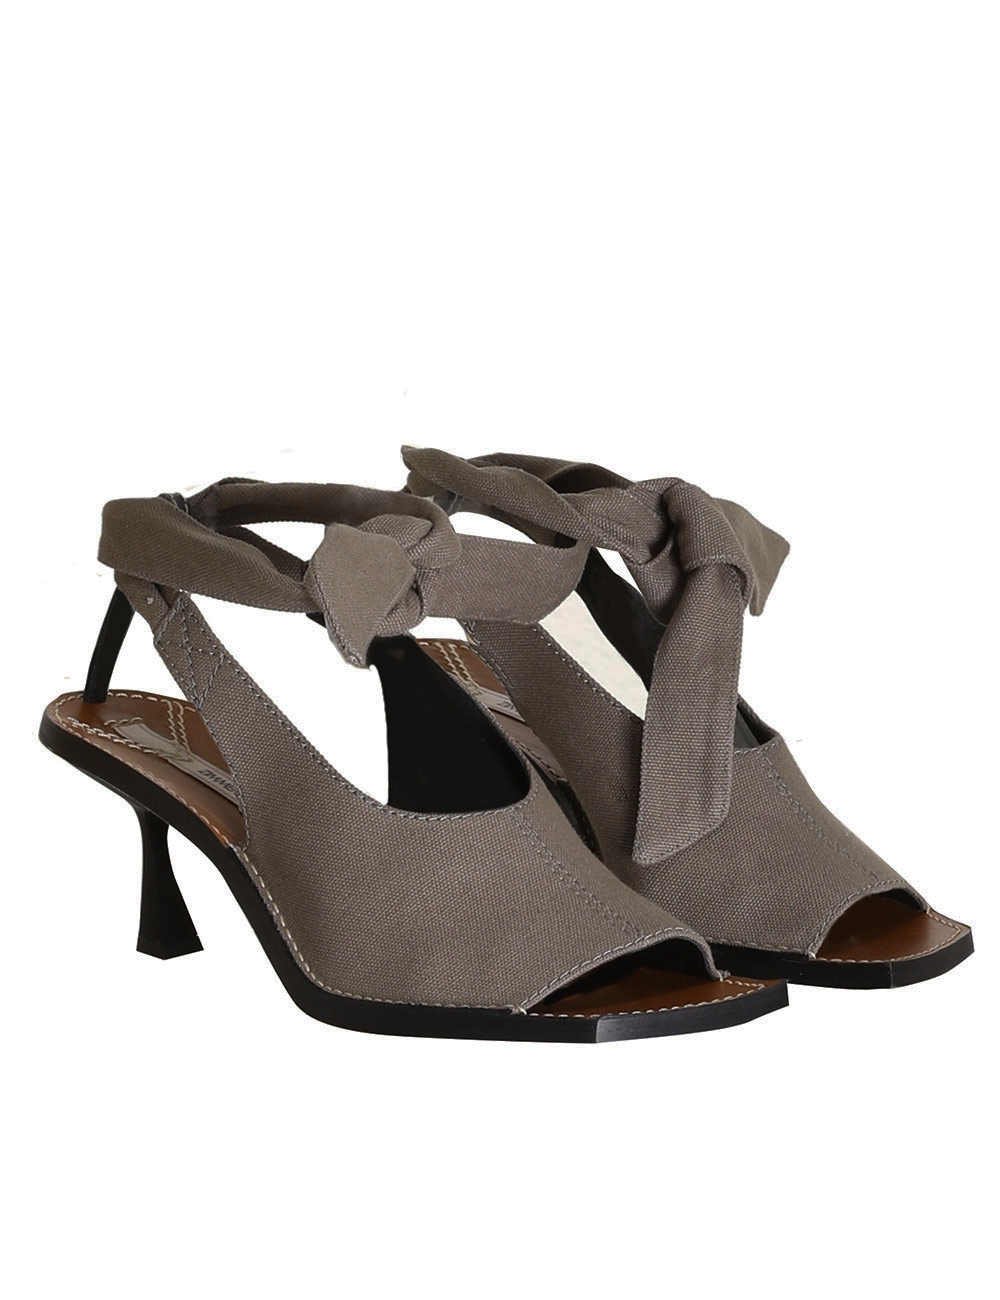 Square Toe Sling Back